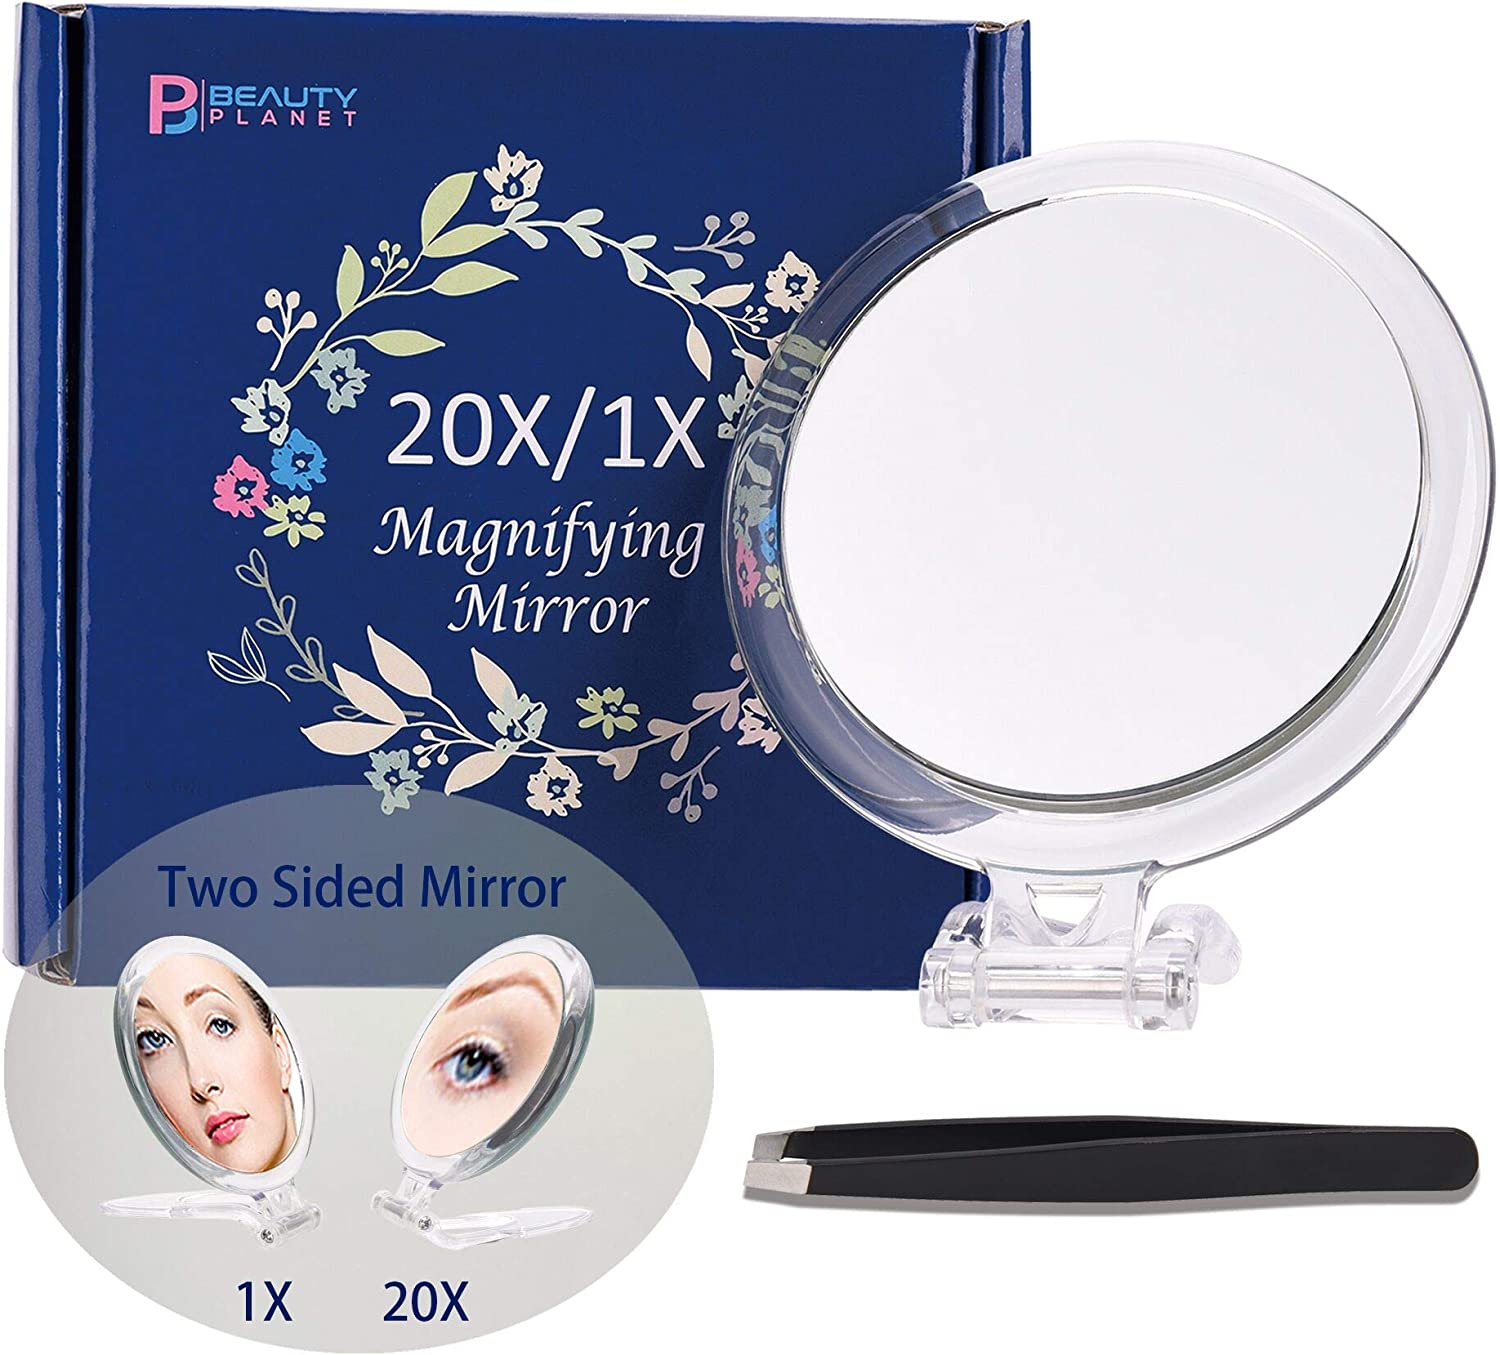 Beauty Planet 20X & 15X Magnifying Mirror Set Combo,6Inch 15X Magnified Mirror with 3 Suction Cups, 4 Inch 20X/1X Makeup Mirror with Handheld/Stand, Use for Makeup Application(Combo): Furniture & Decor